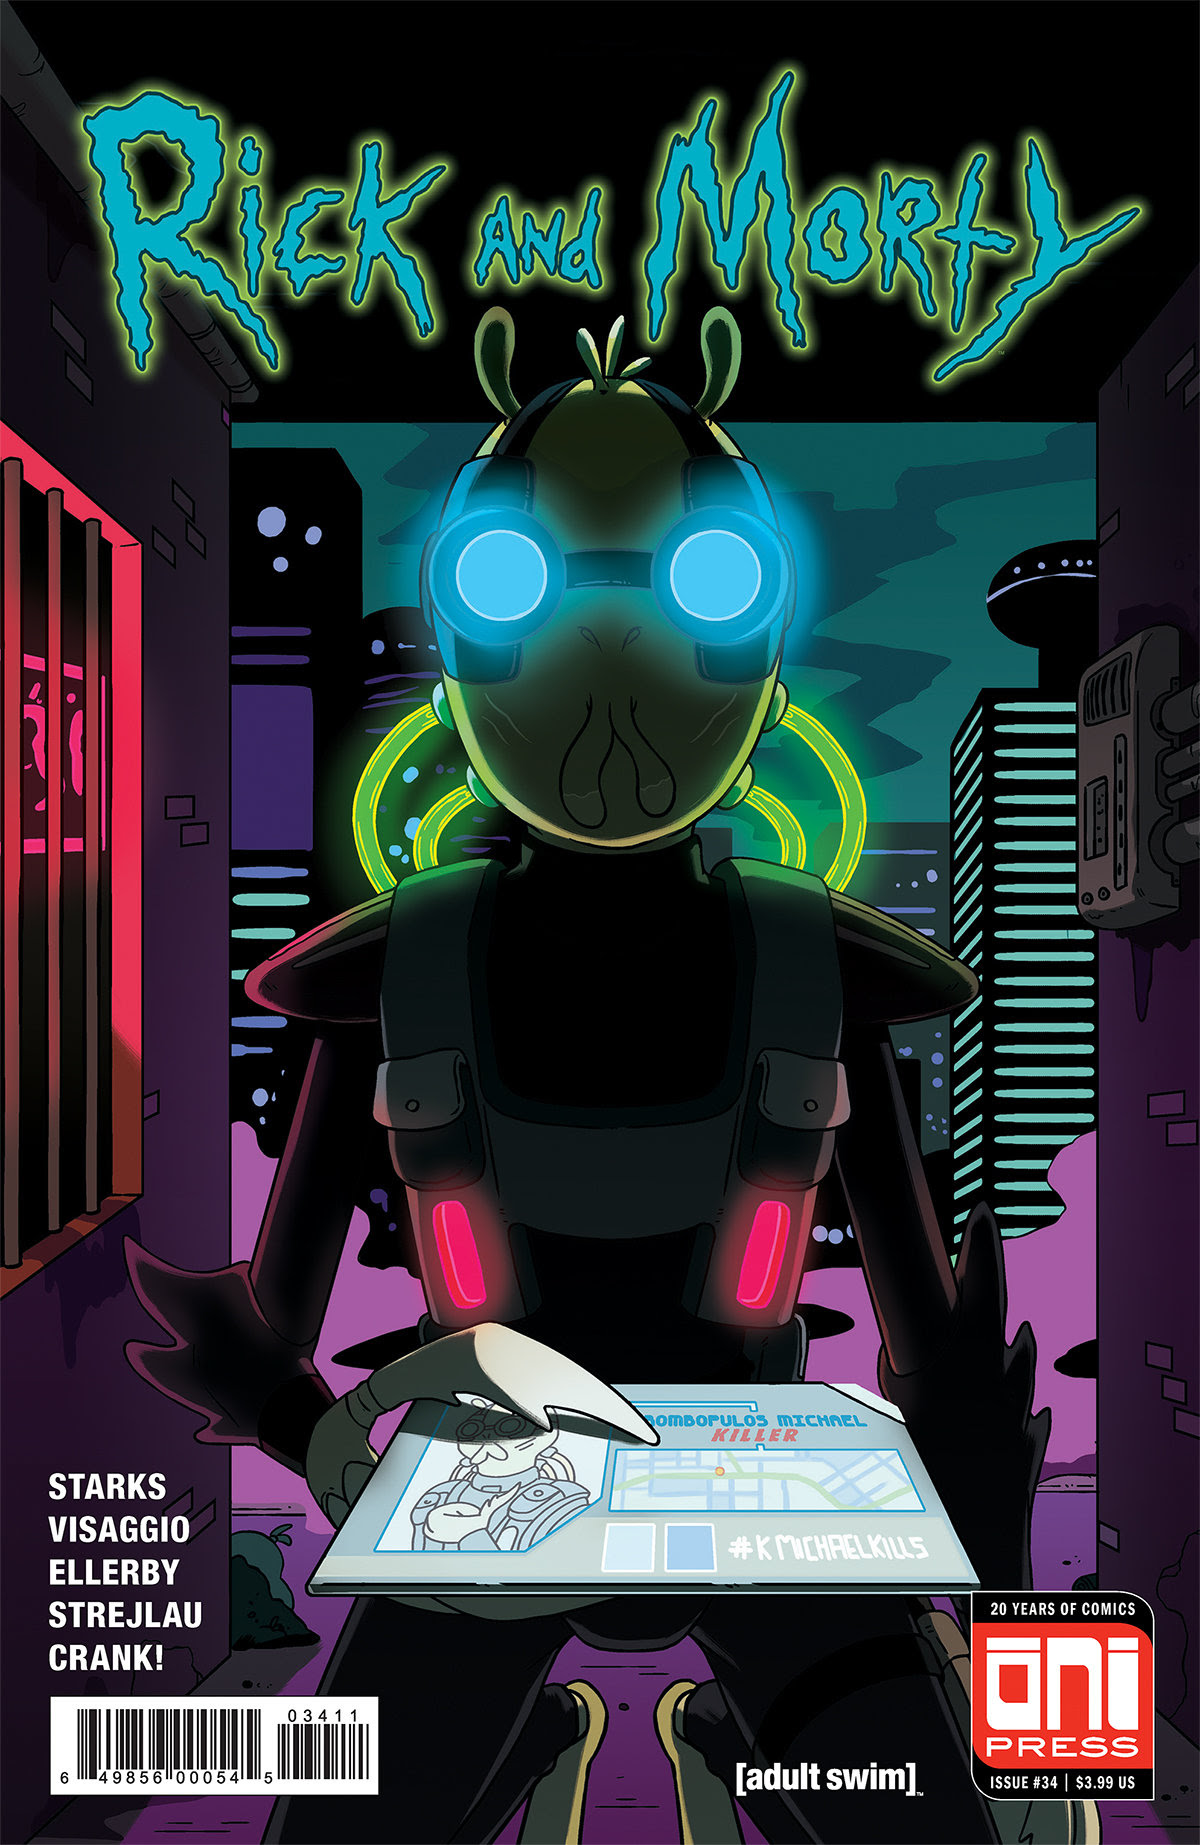 Rick and Morty #34 Review